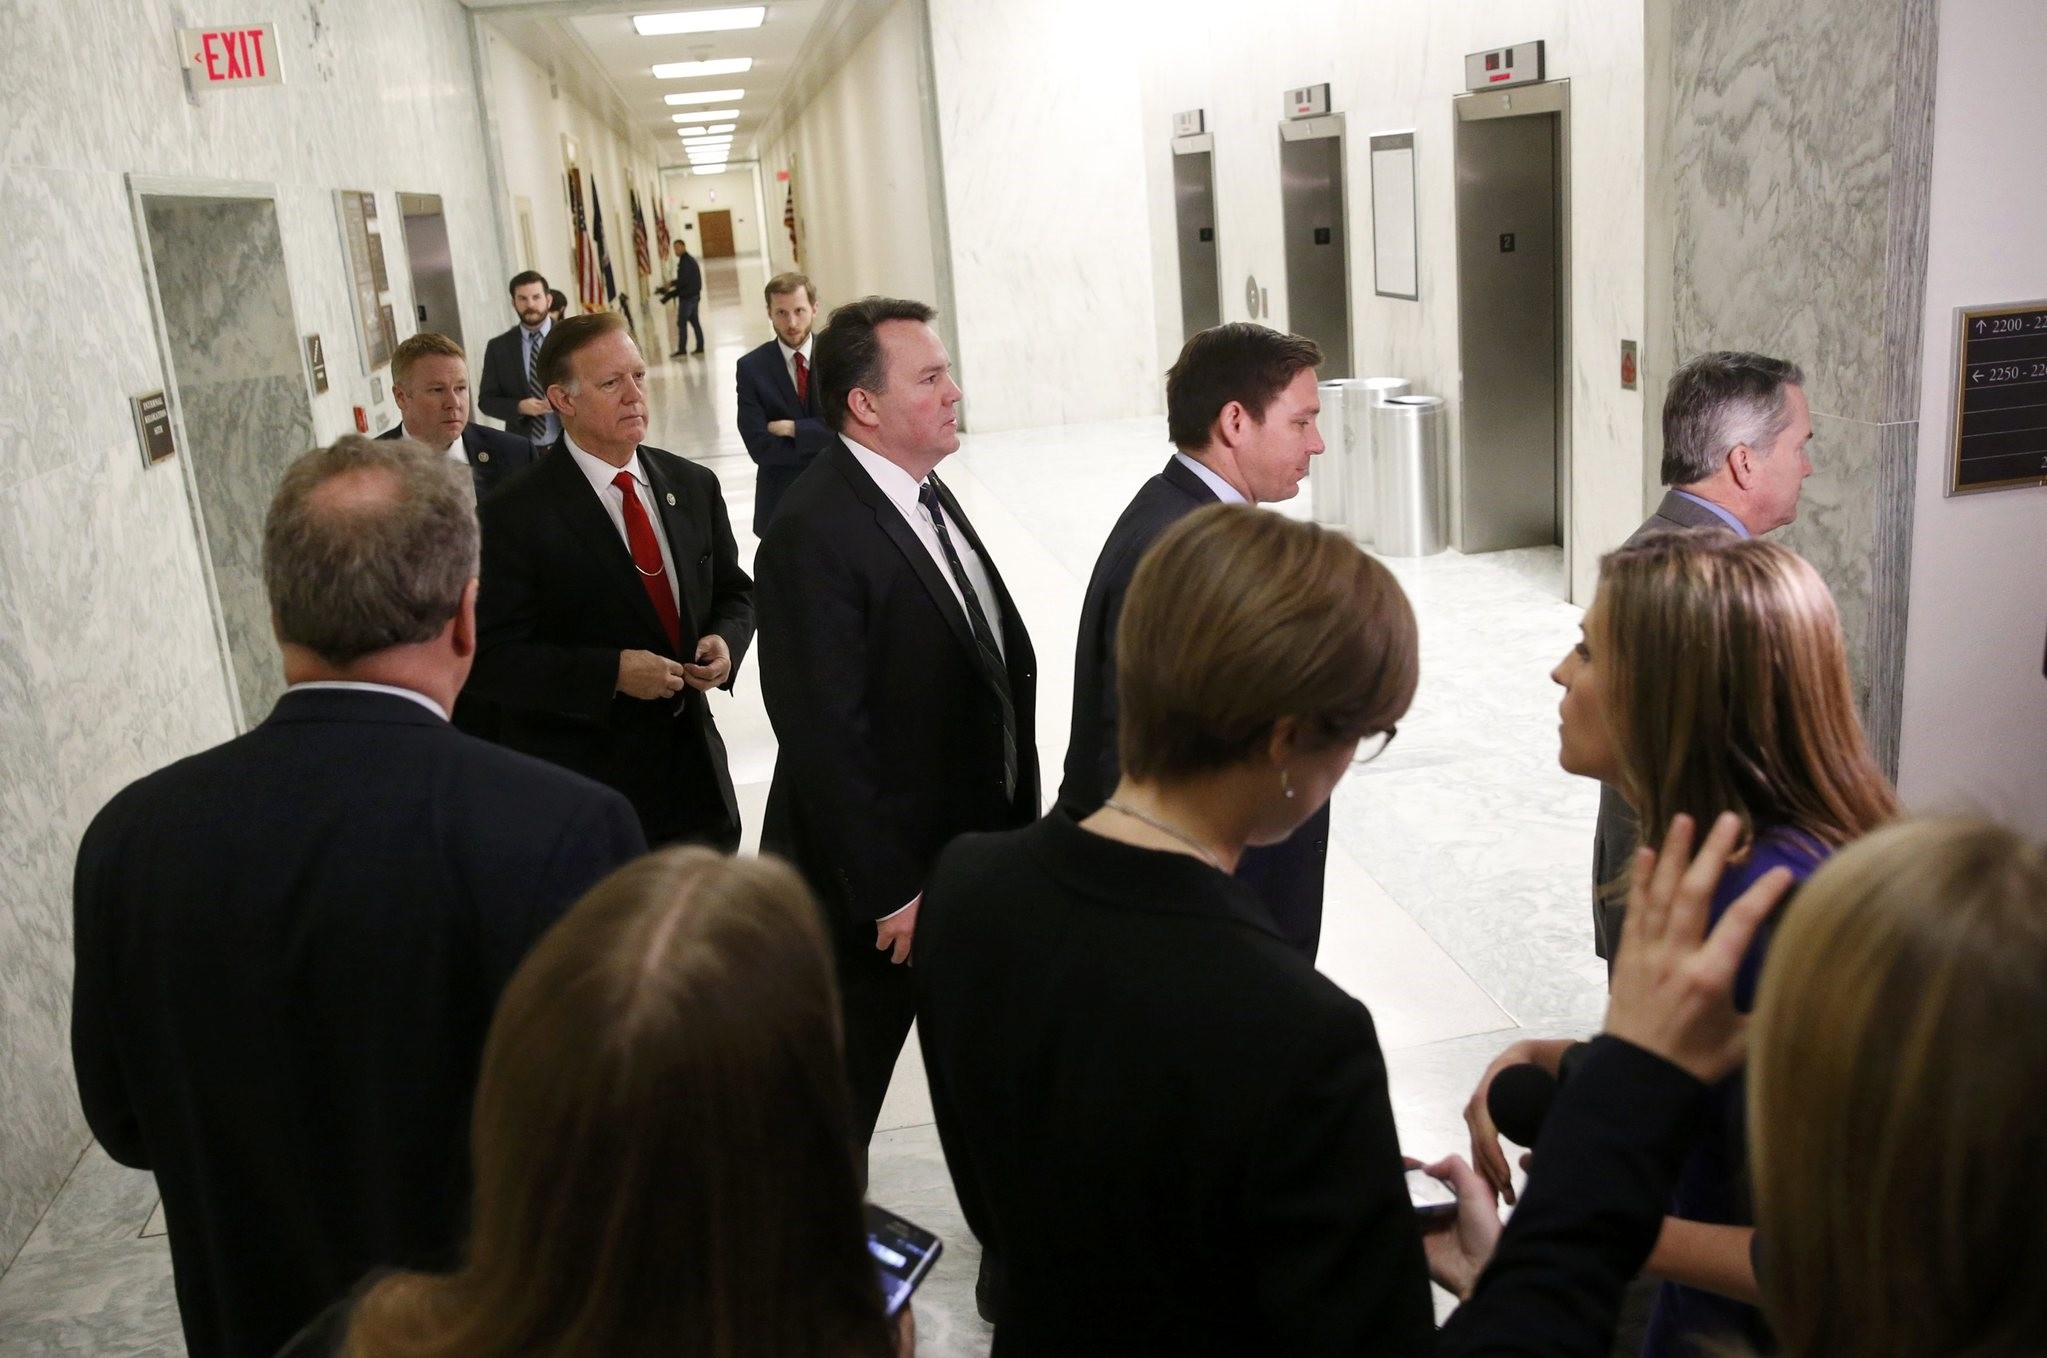 House Freedom Caucus members return to a meeting after their trip to the White House to meet with Trump about the health care bill. (Reuters Photo)